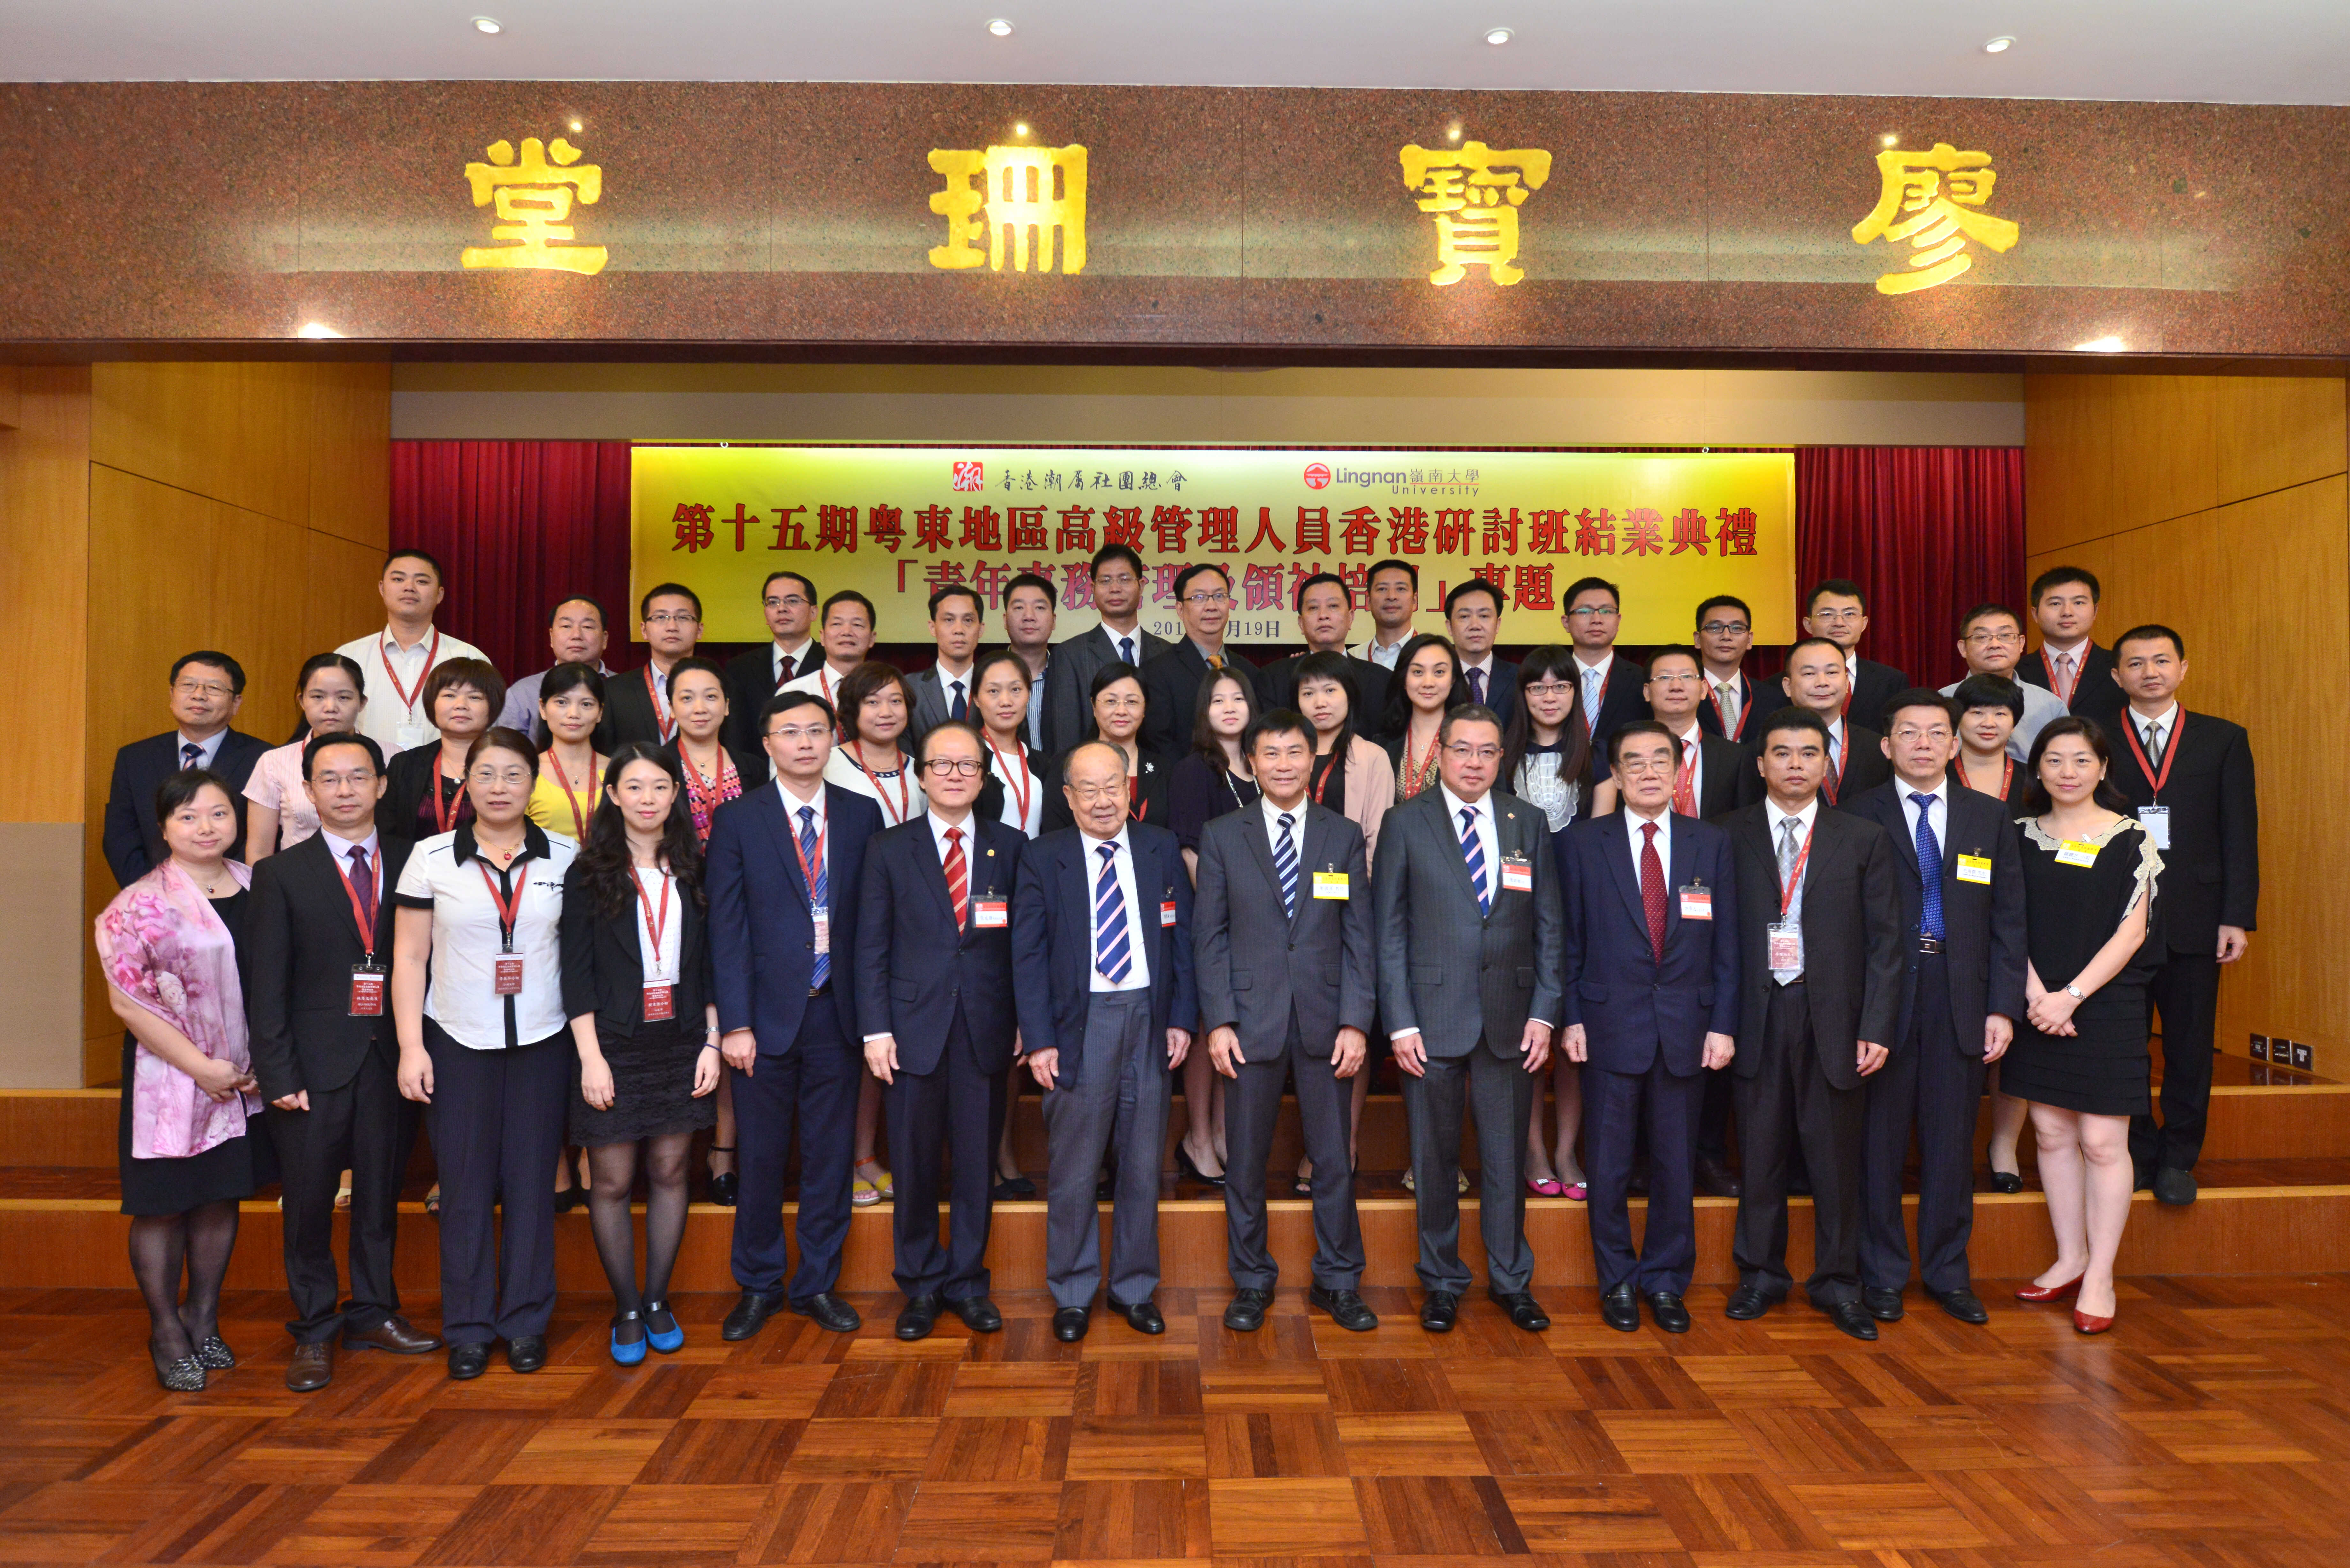 The 15th  Seminar for Senior Administrators from East Guangdong Region